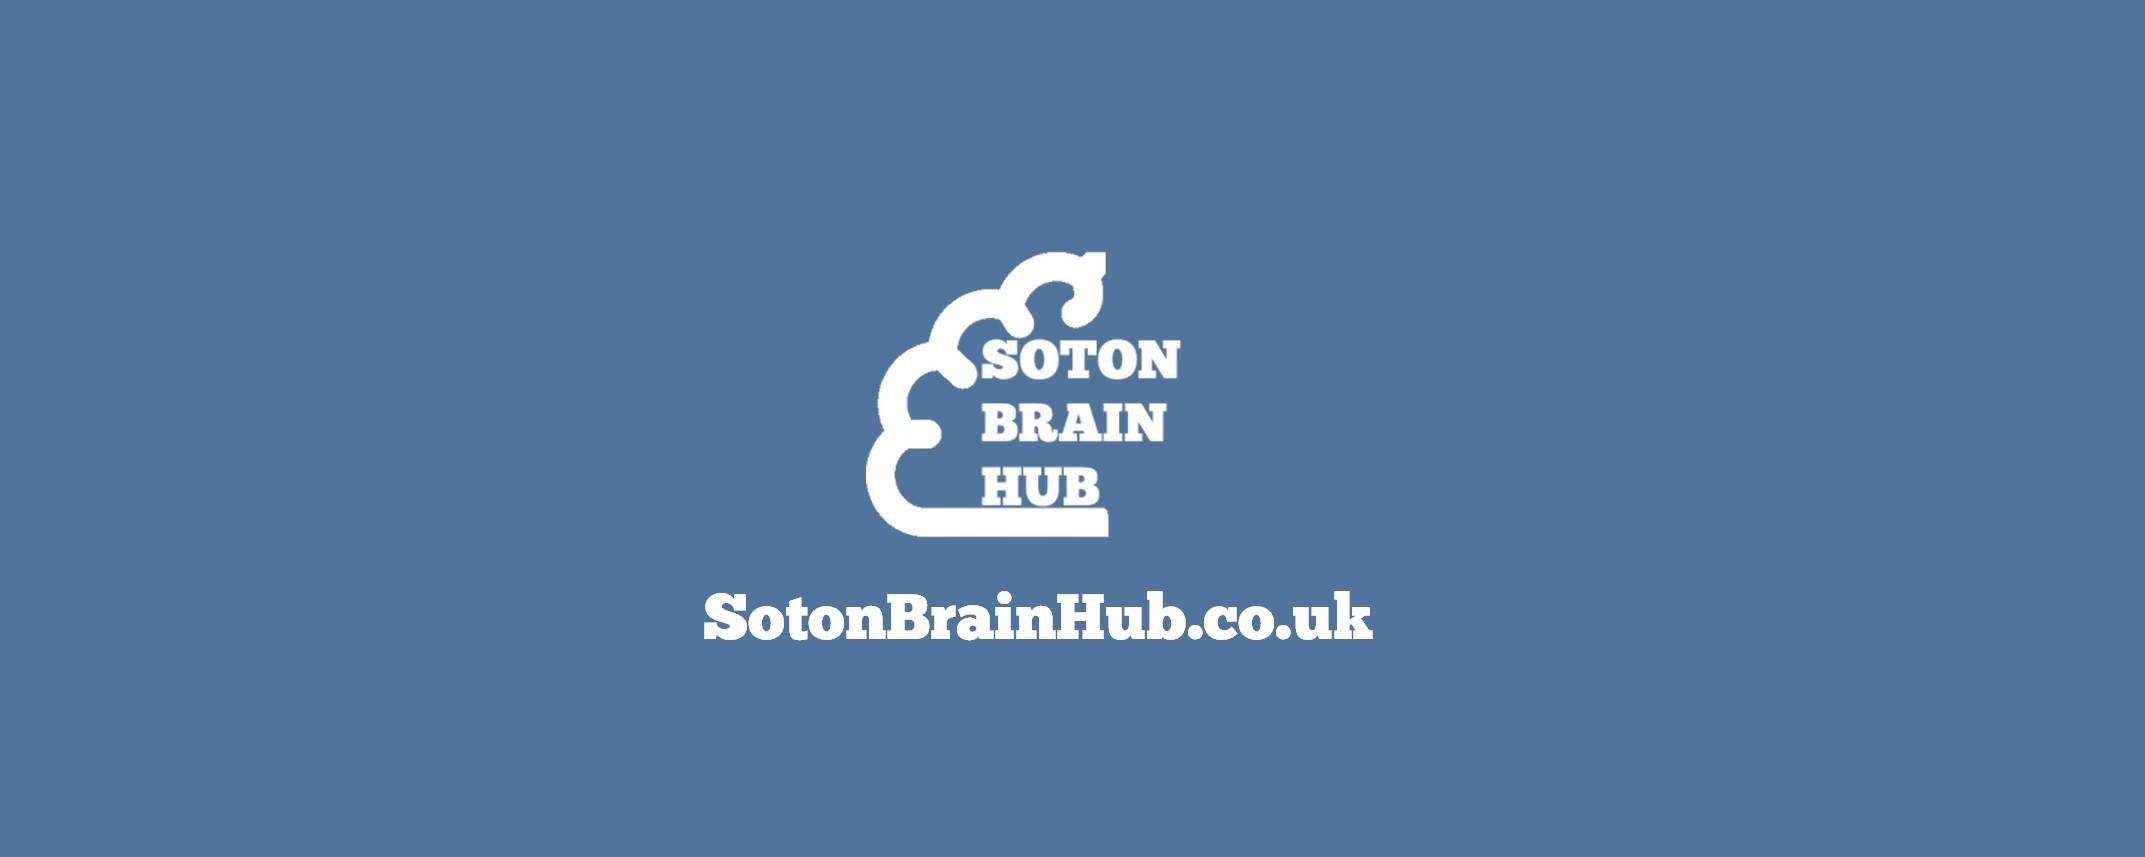 Soton Brain Hub - Southampton Brain Hub produce amazing resources to help you understand the nervous system. Be sure to pay them a visit!